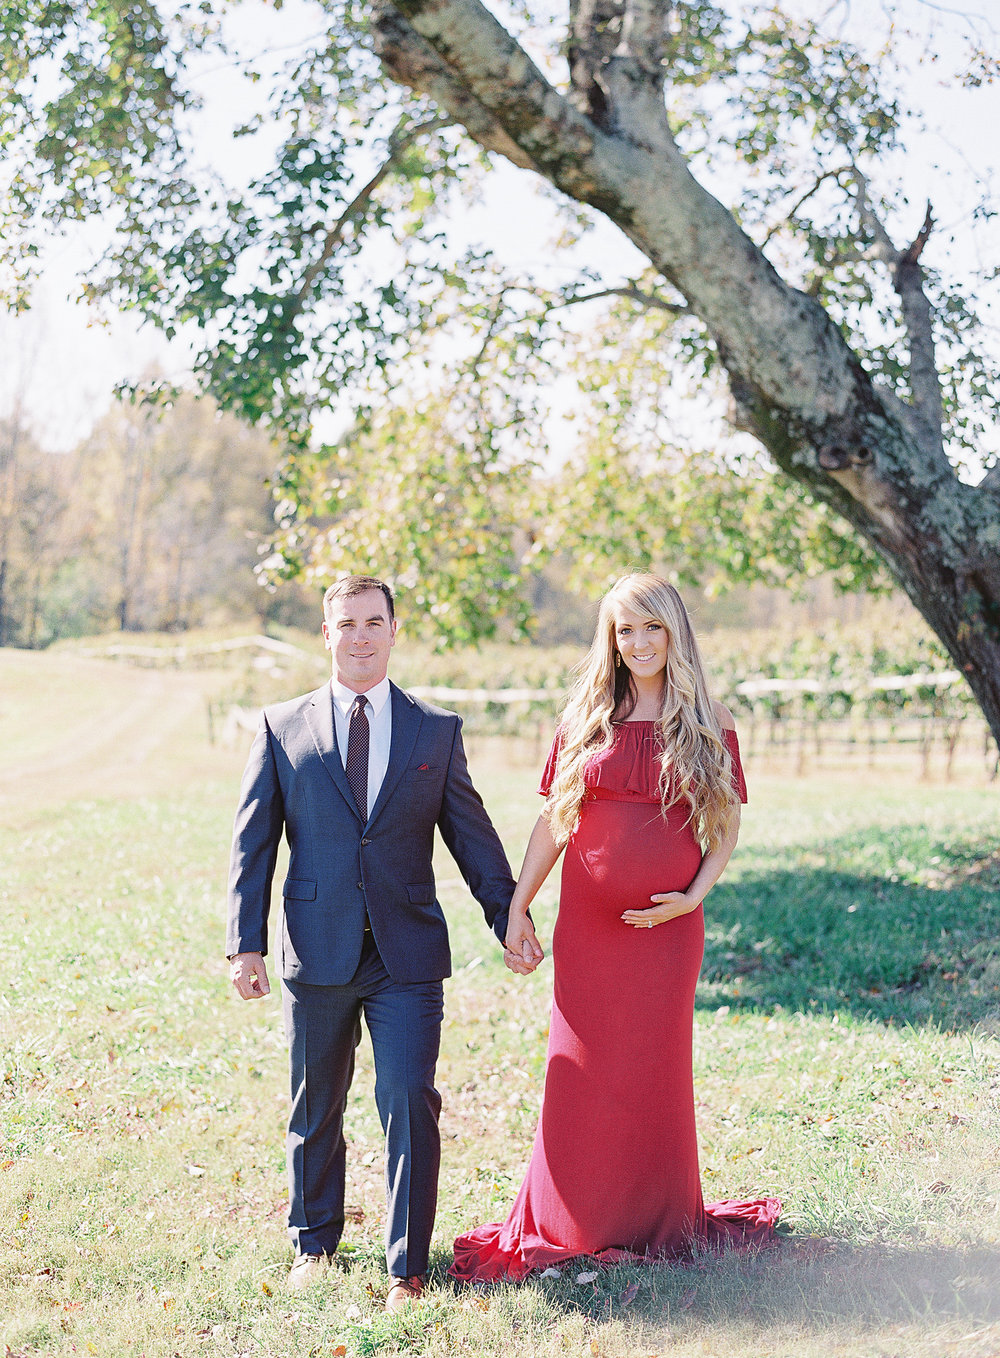 dahlonega-georgia-atlanta-montaluce-winery-wedding-family-photographer-hannah-forsberg-11.jpg